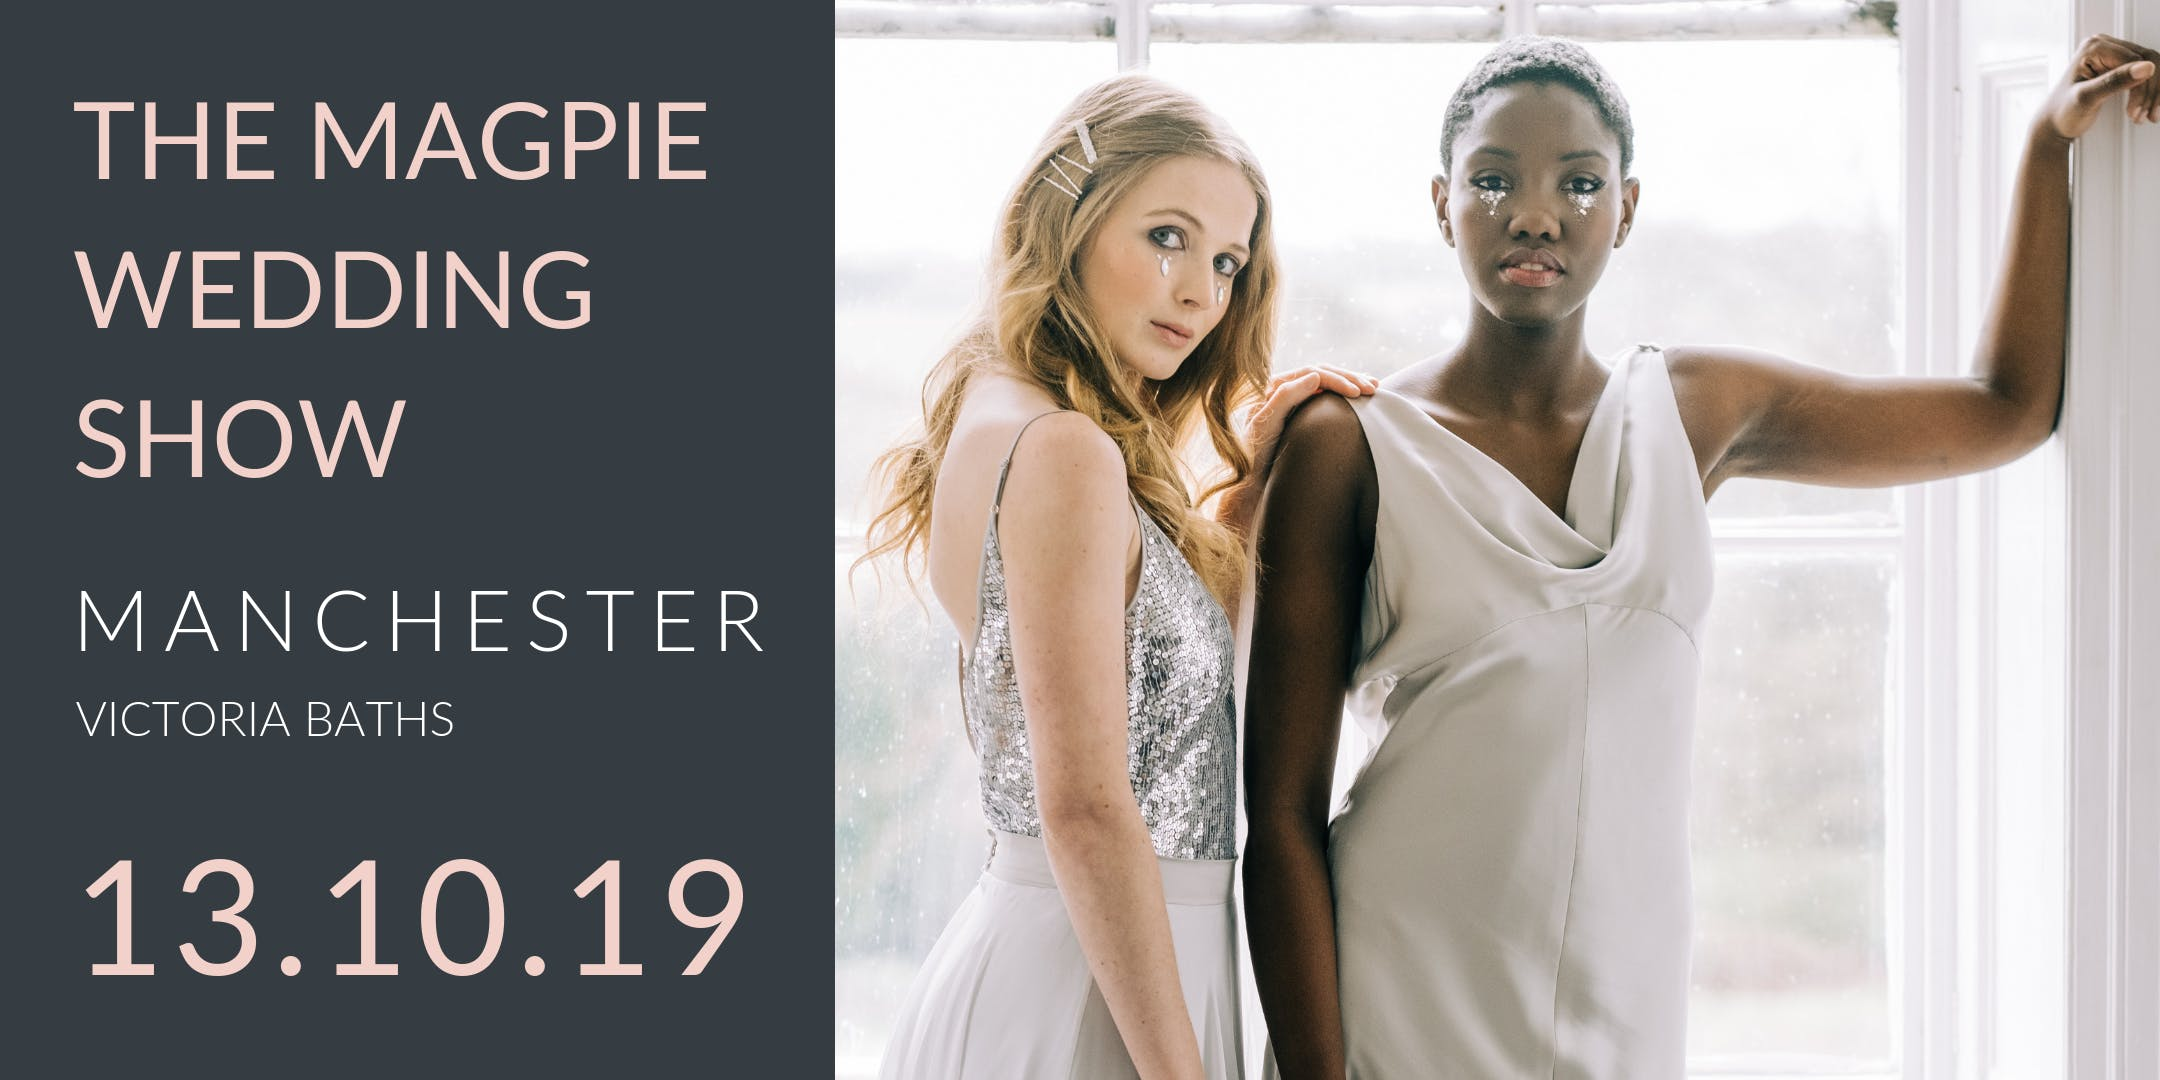 The Magpie Wedding Show - VIP Ticket